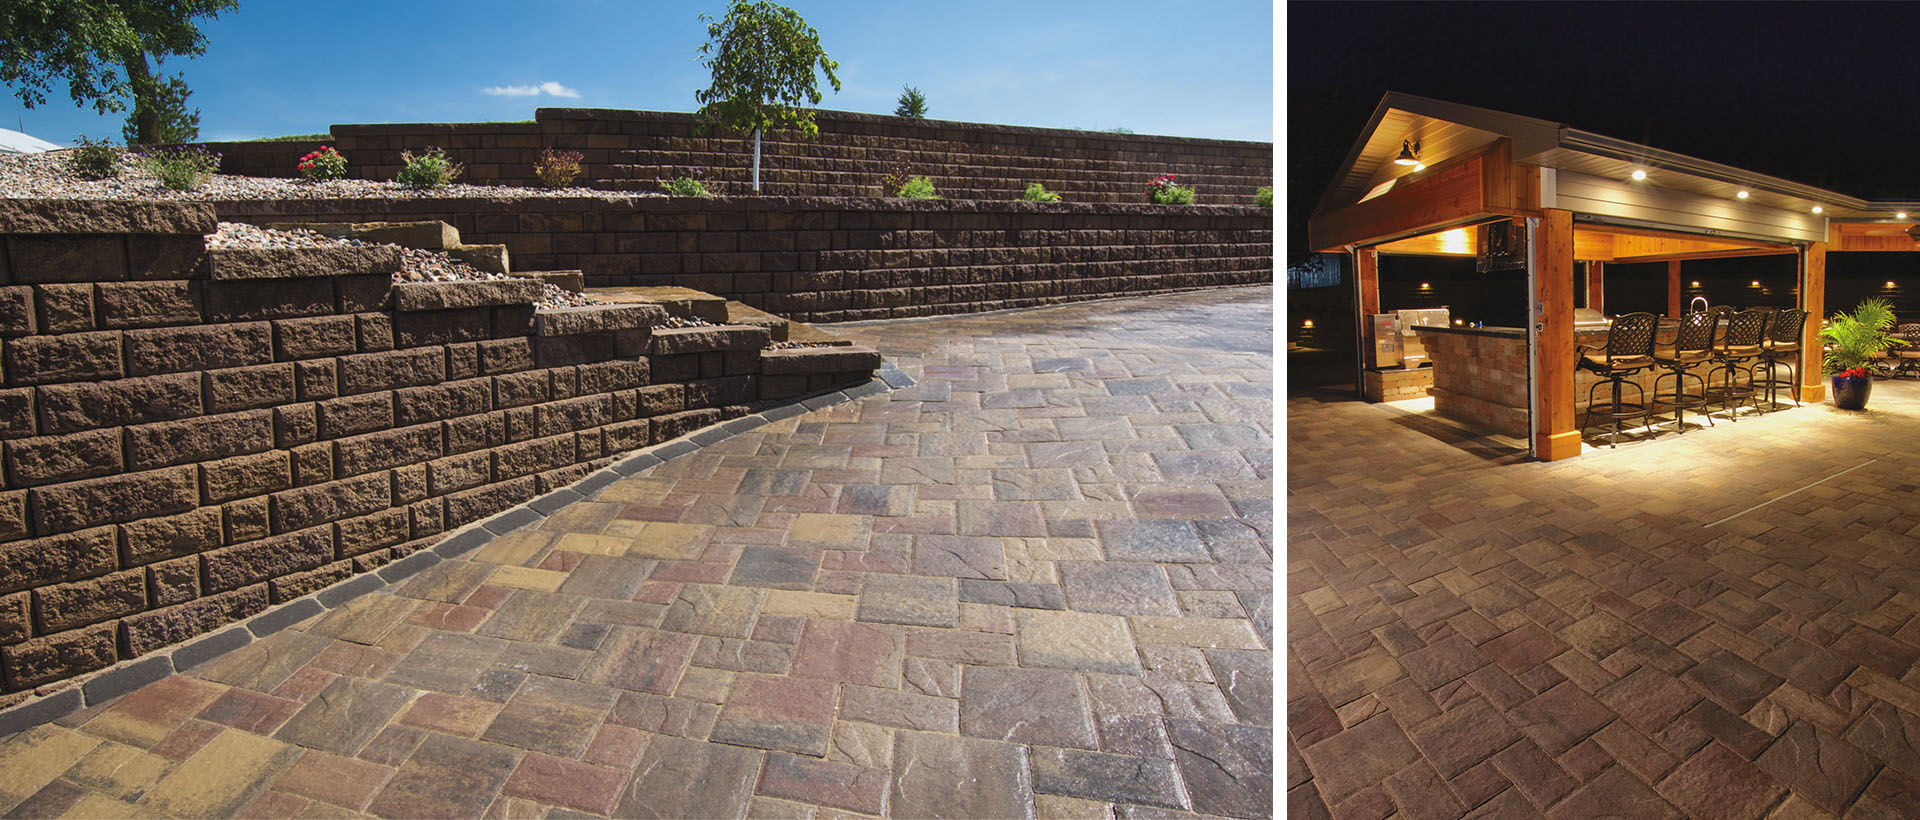 Mezzano is the smaller version of our Minnetonka paver. Its embossed tops and chamfered/irregular edge details are designed for use on patios, pathways, pool decks or vehicular applications.